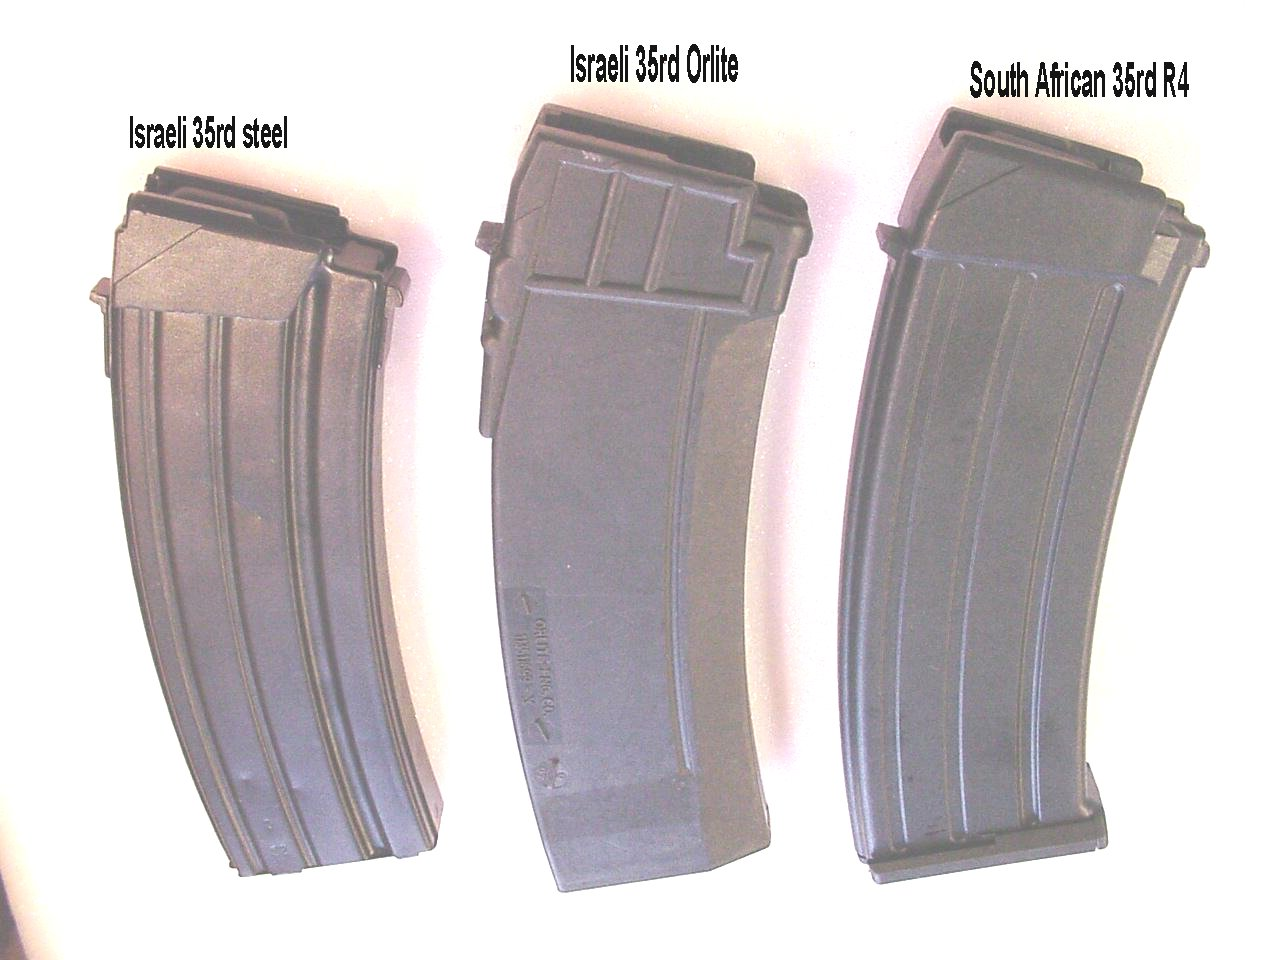 Galil 5.56 x 45mm Magazines: www.valmet.org/galil556mags.htm